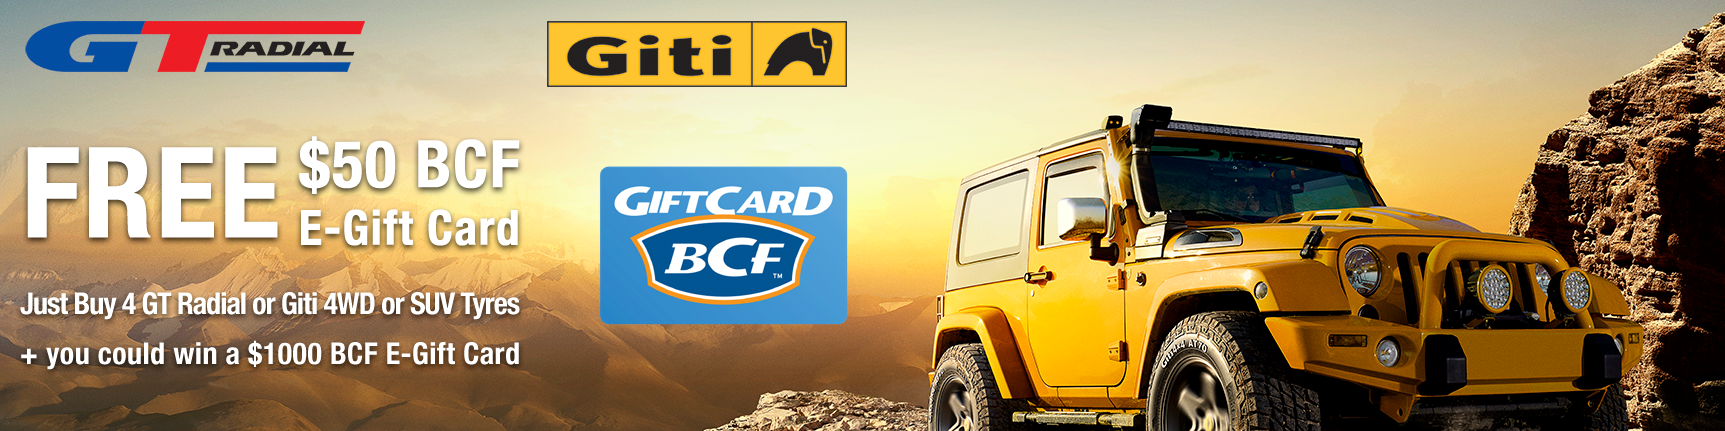 Buy 4 GT Radial or Giti 4WD or SUV Tyres and Receive a $50 BCF E-Gift Card